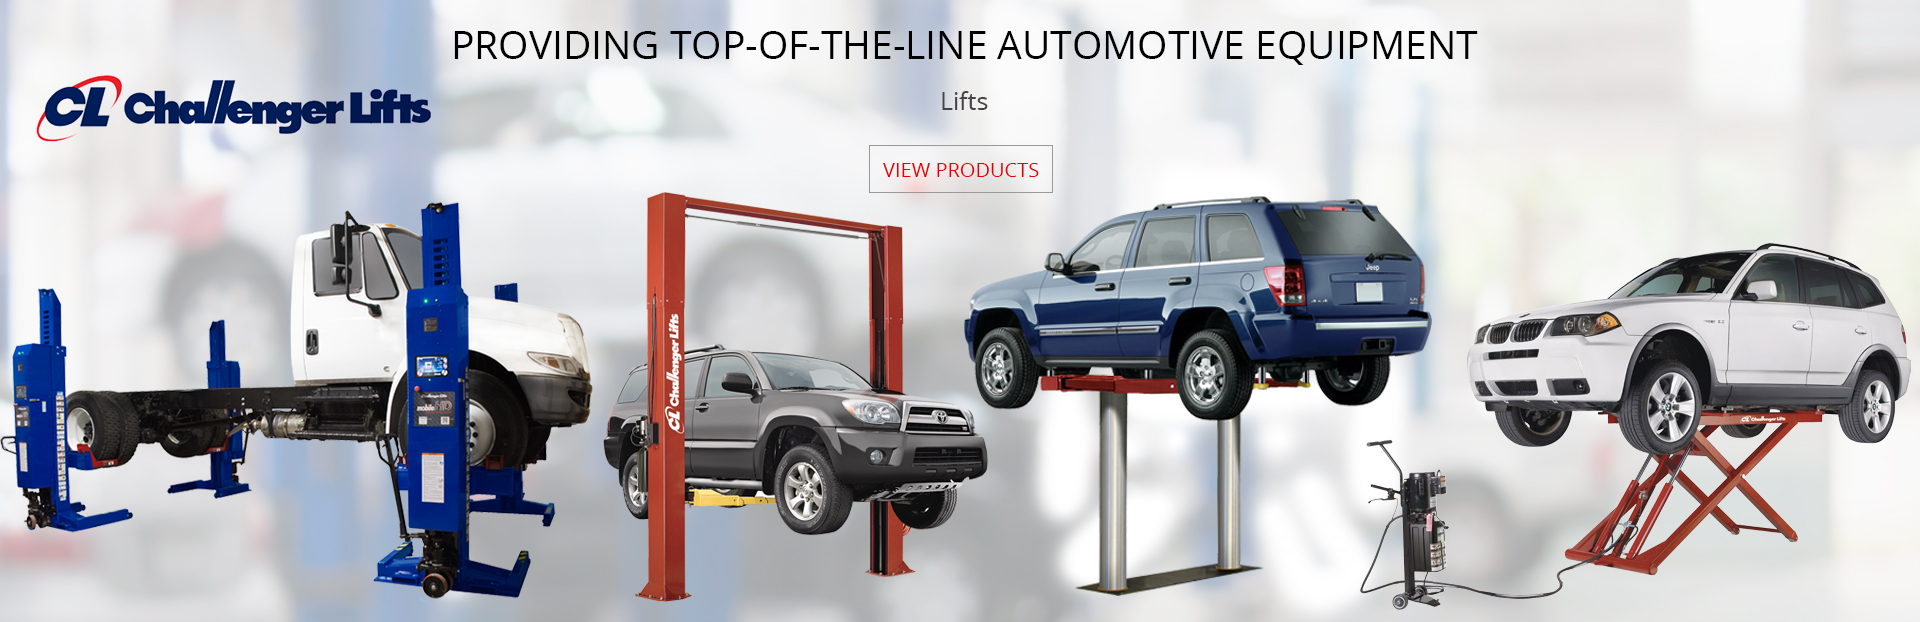 Providing Top of the line automotive equipment